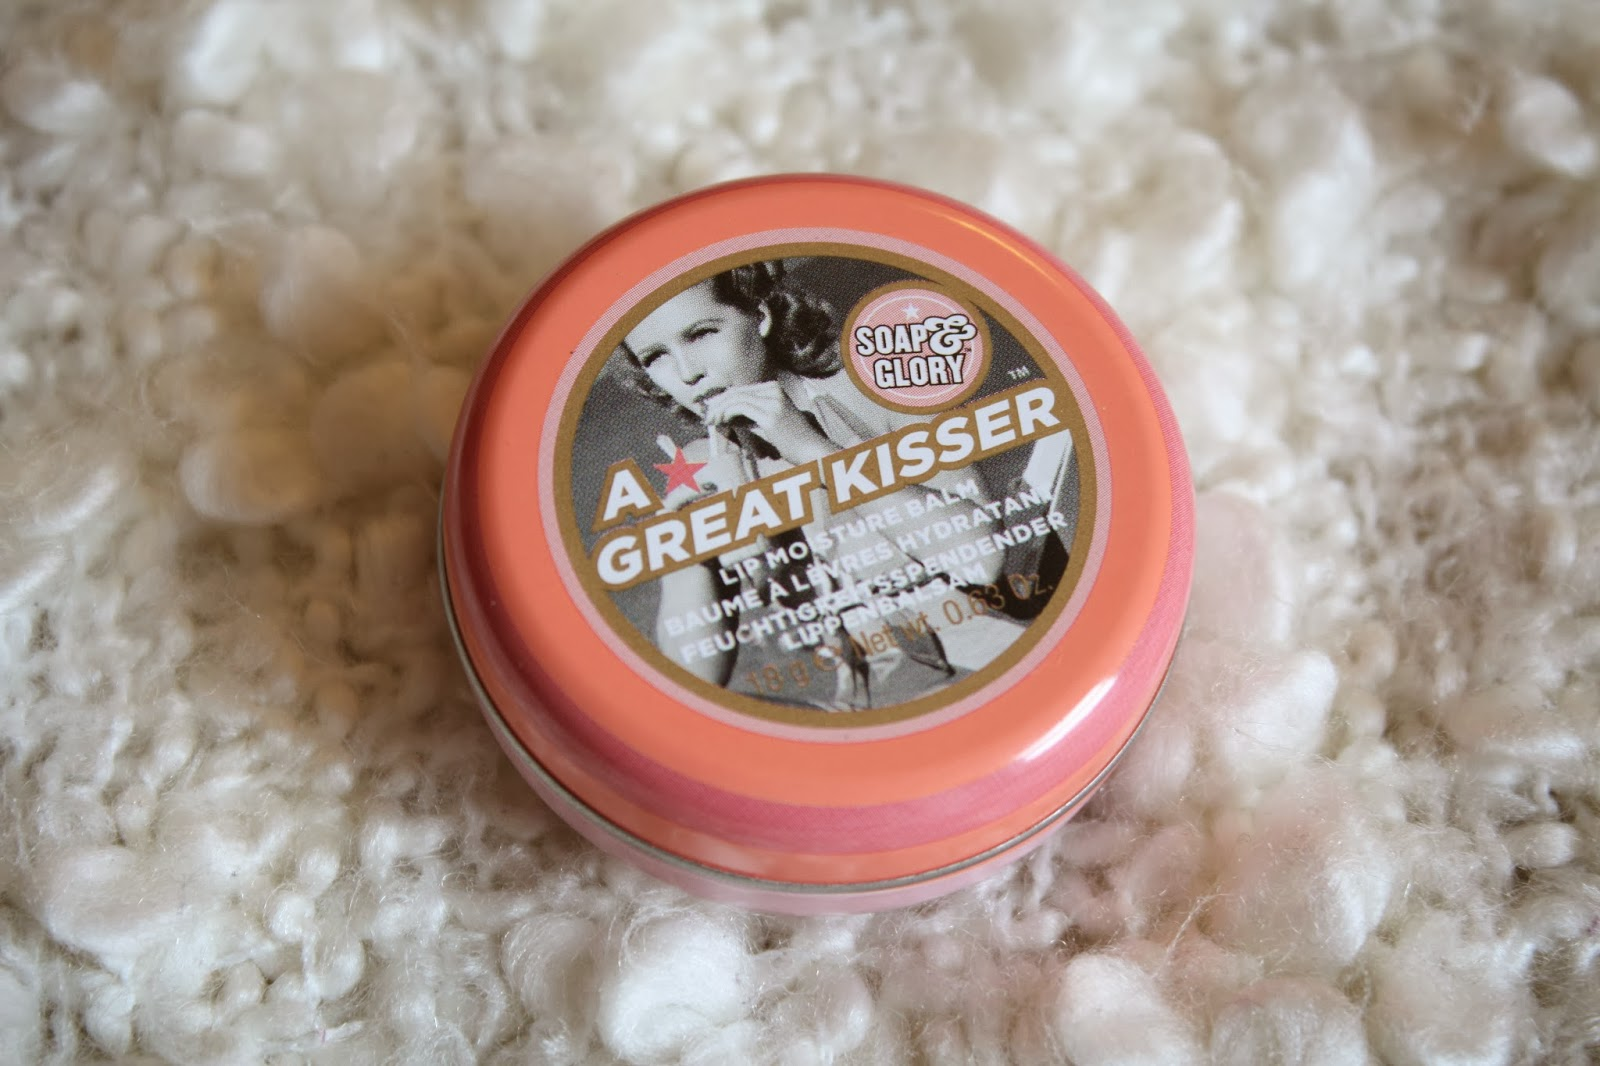 Soap & Glory 'A Great Kisser' Lipbalm